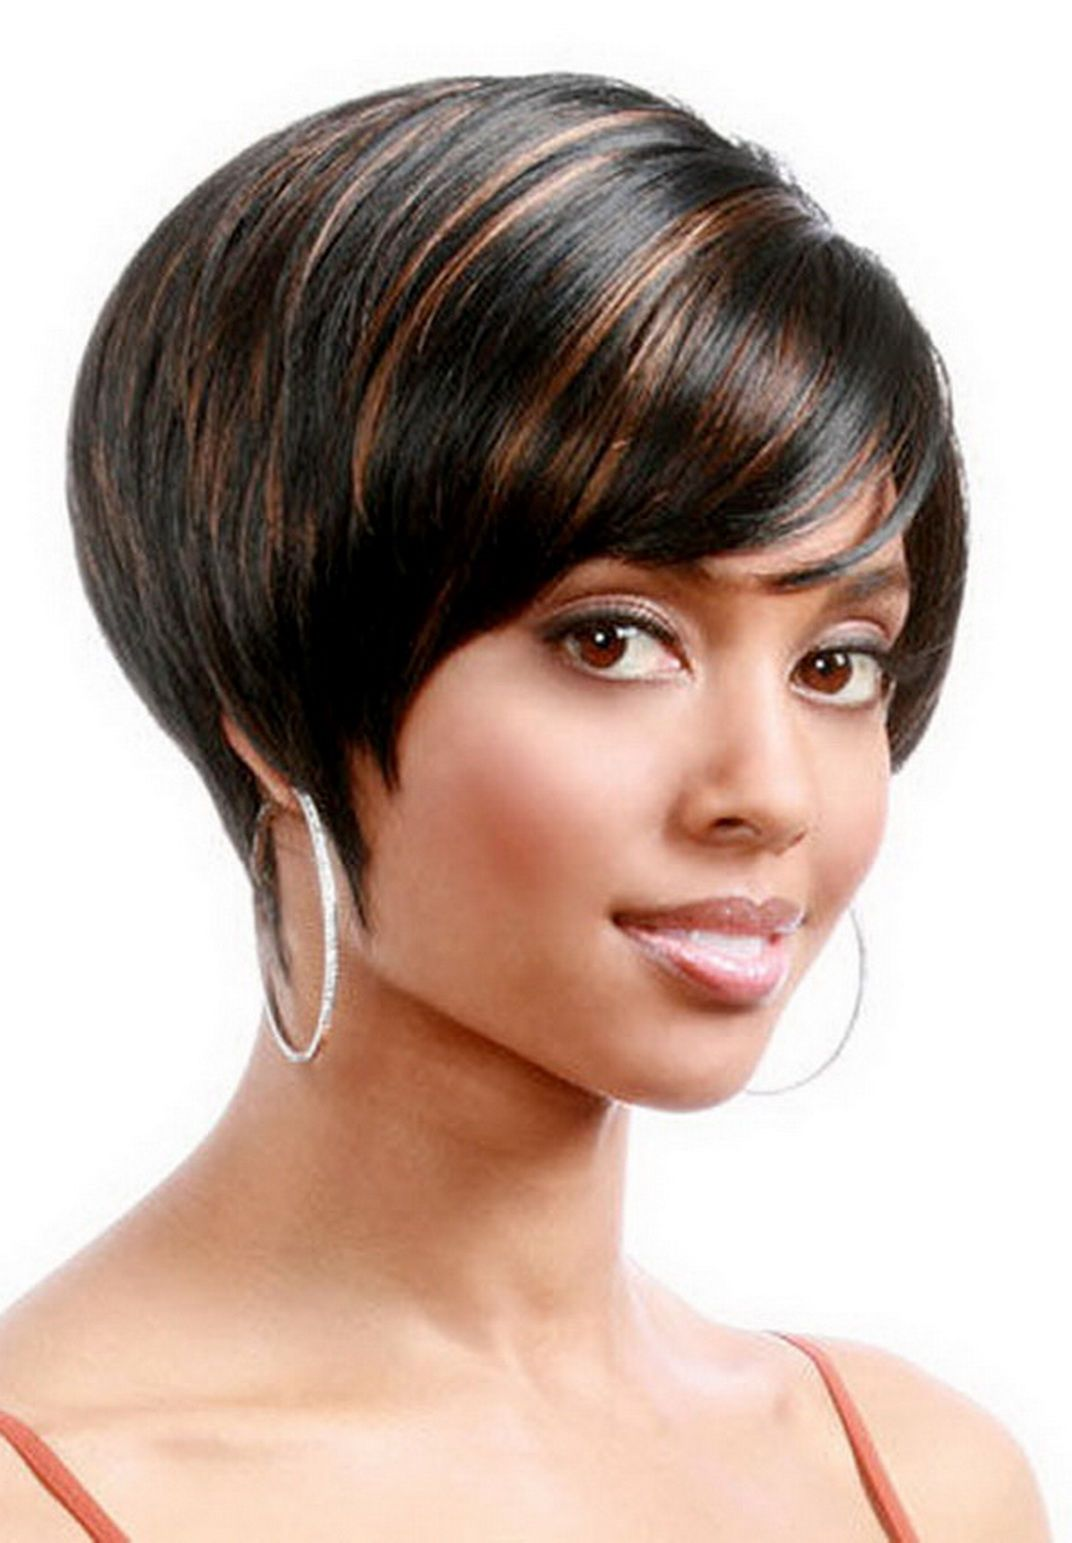 Marvelous 1000 Images About Hair On Pinterest Hairstyles Haircuts And Hairstyles For Women Draintrainus